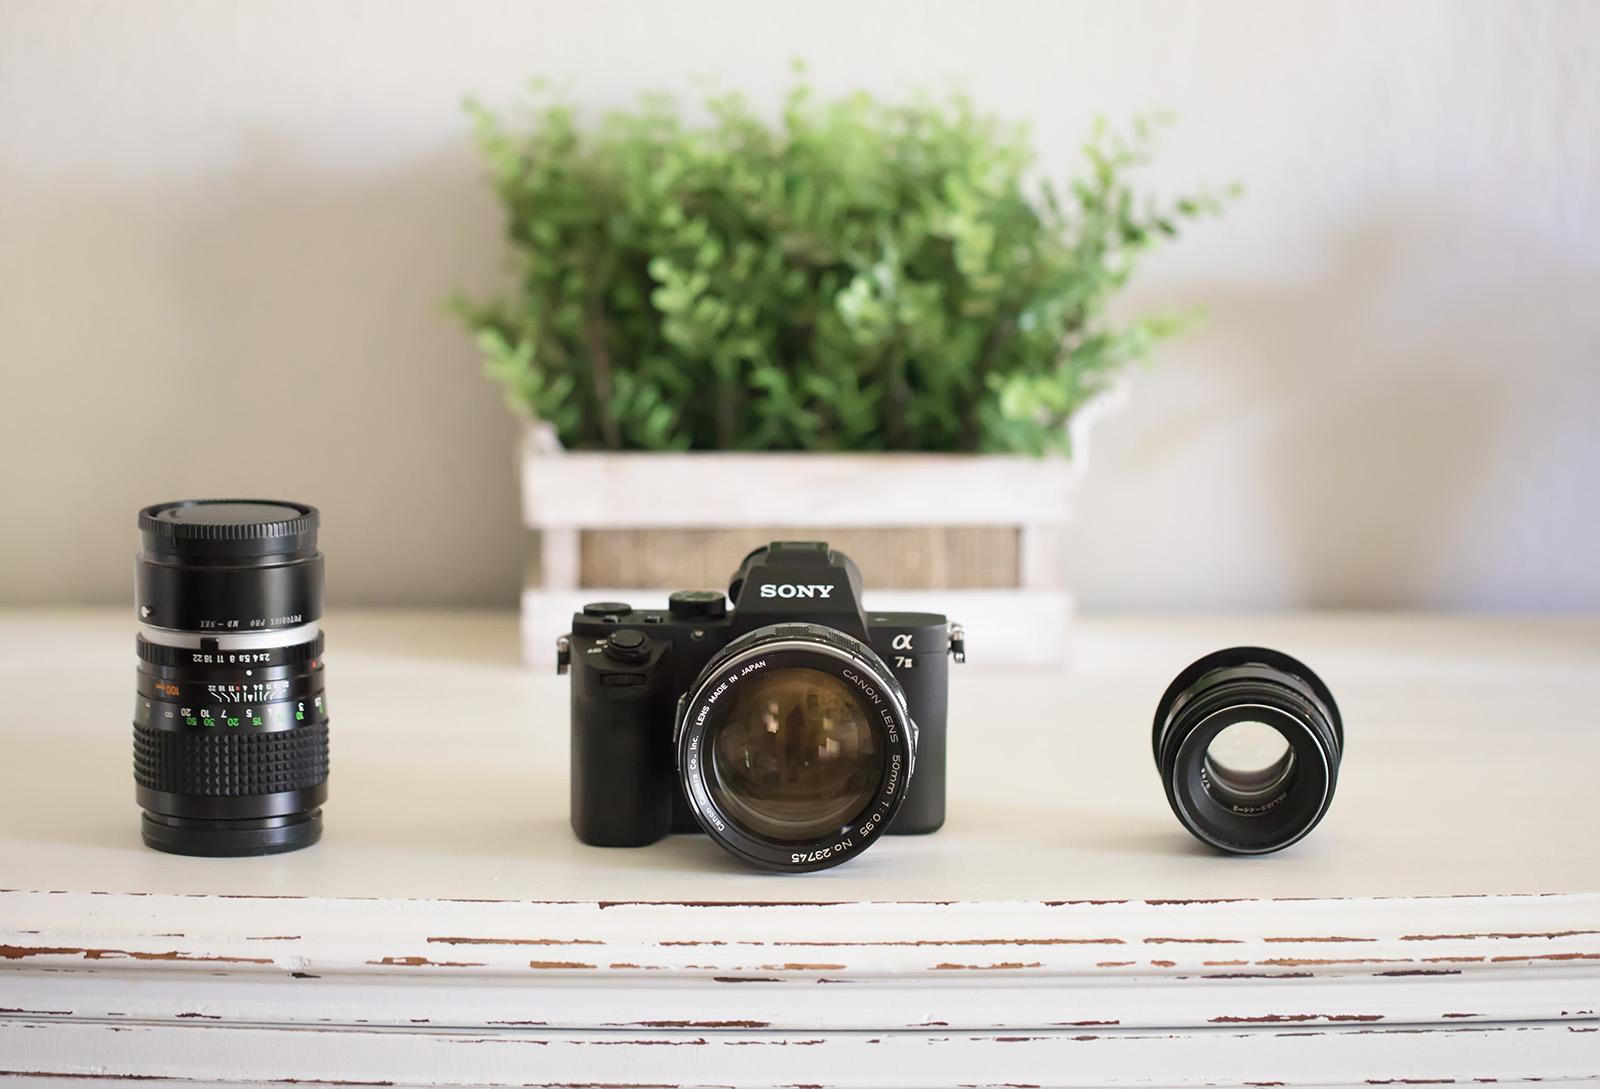 5 Reasons using vintage camera lenses will change your photography